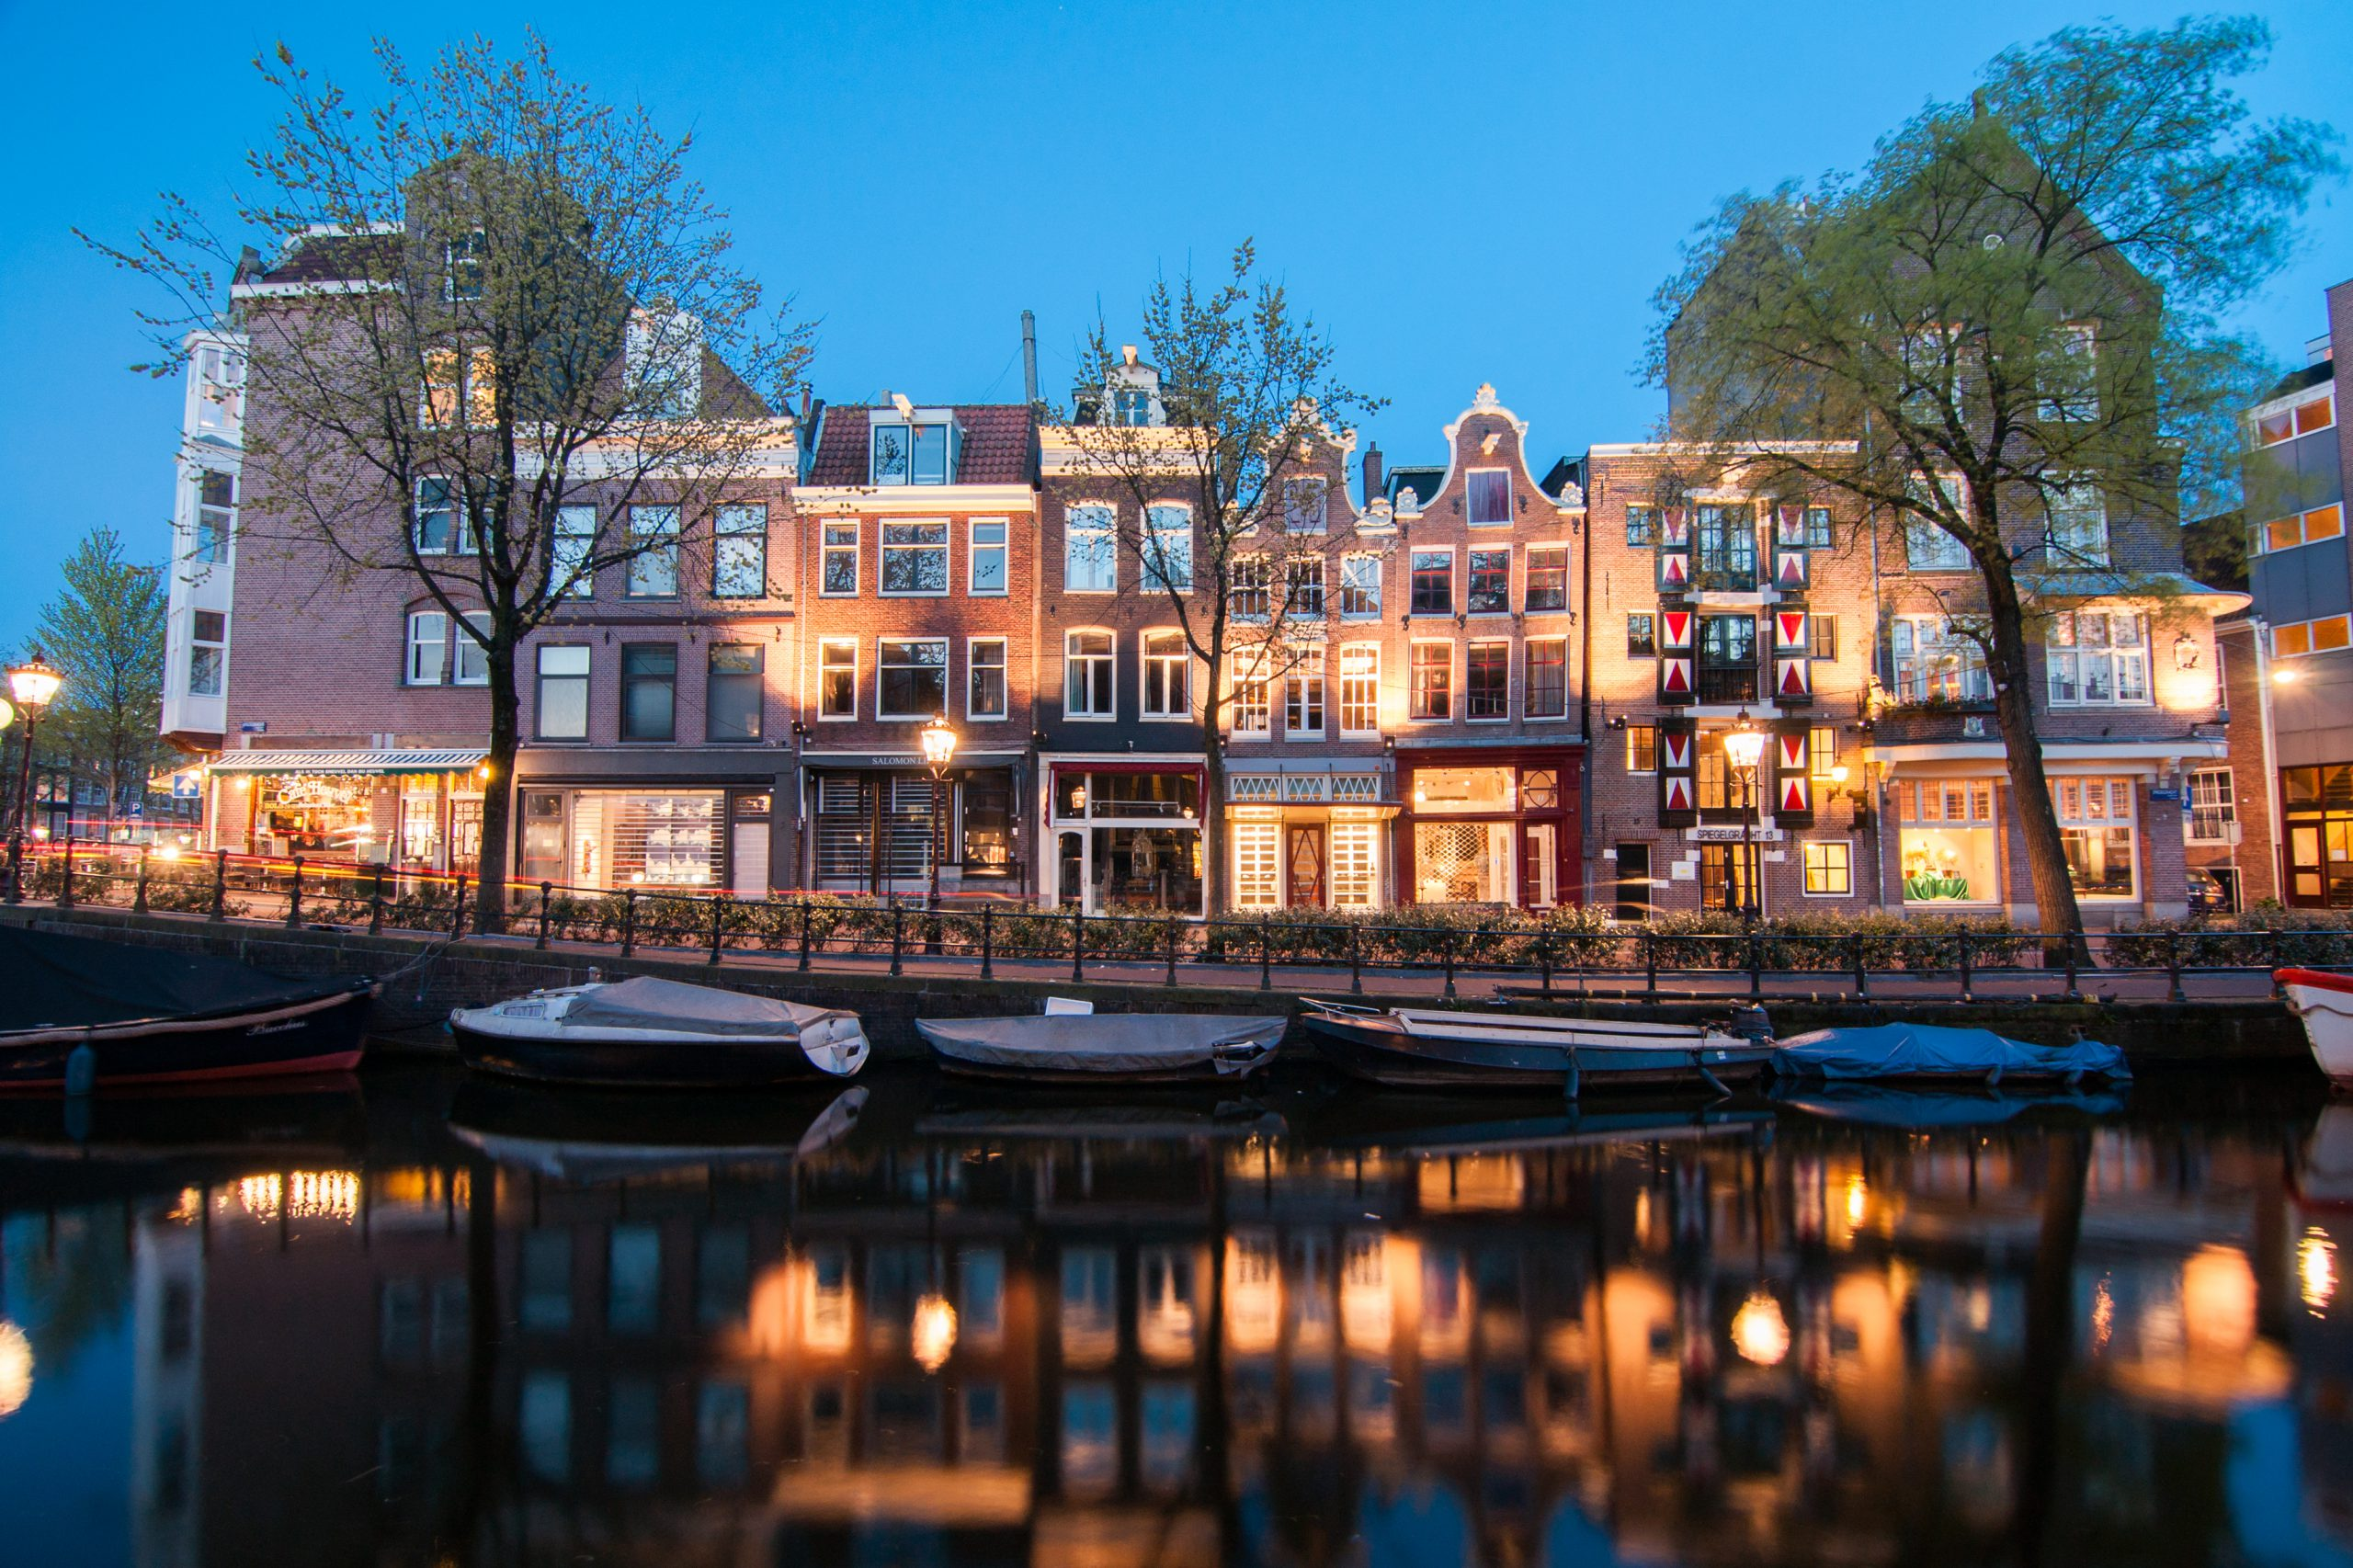 Amsterdam's response to exponential tourism growth and its impact on residents